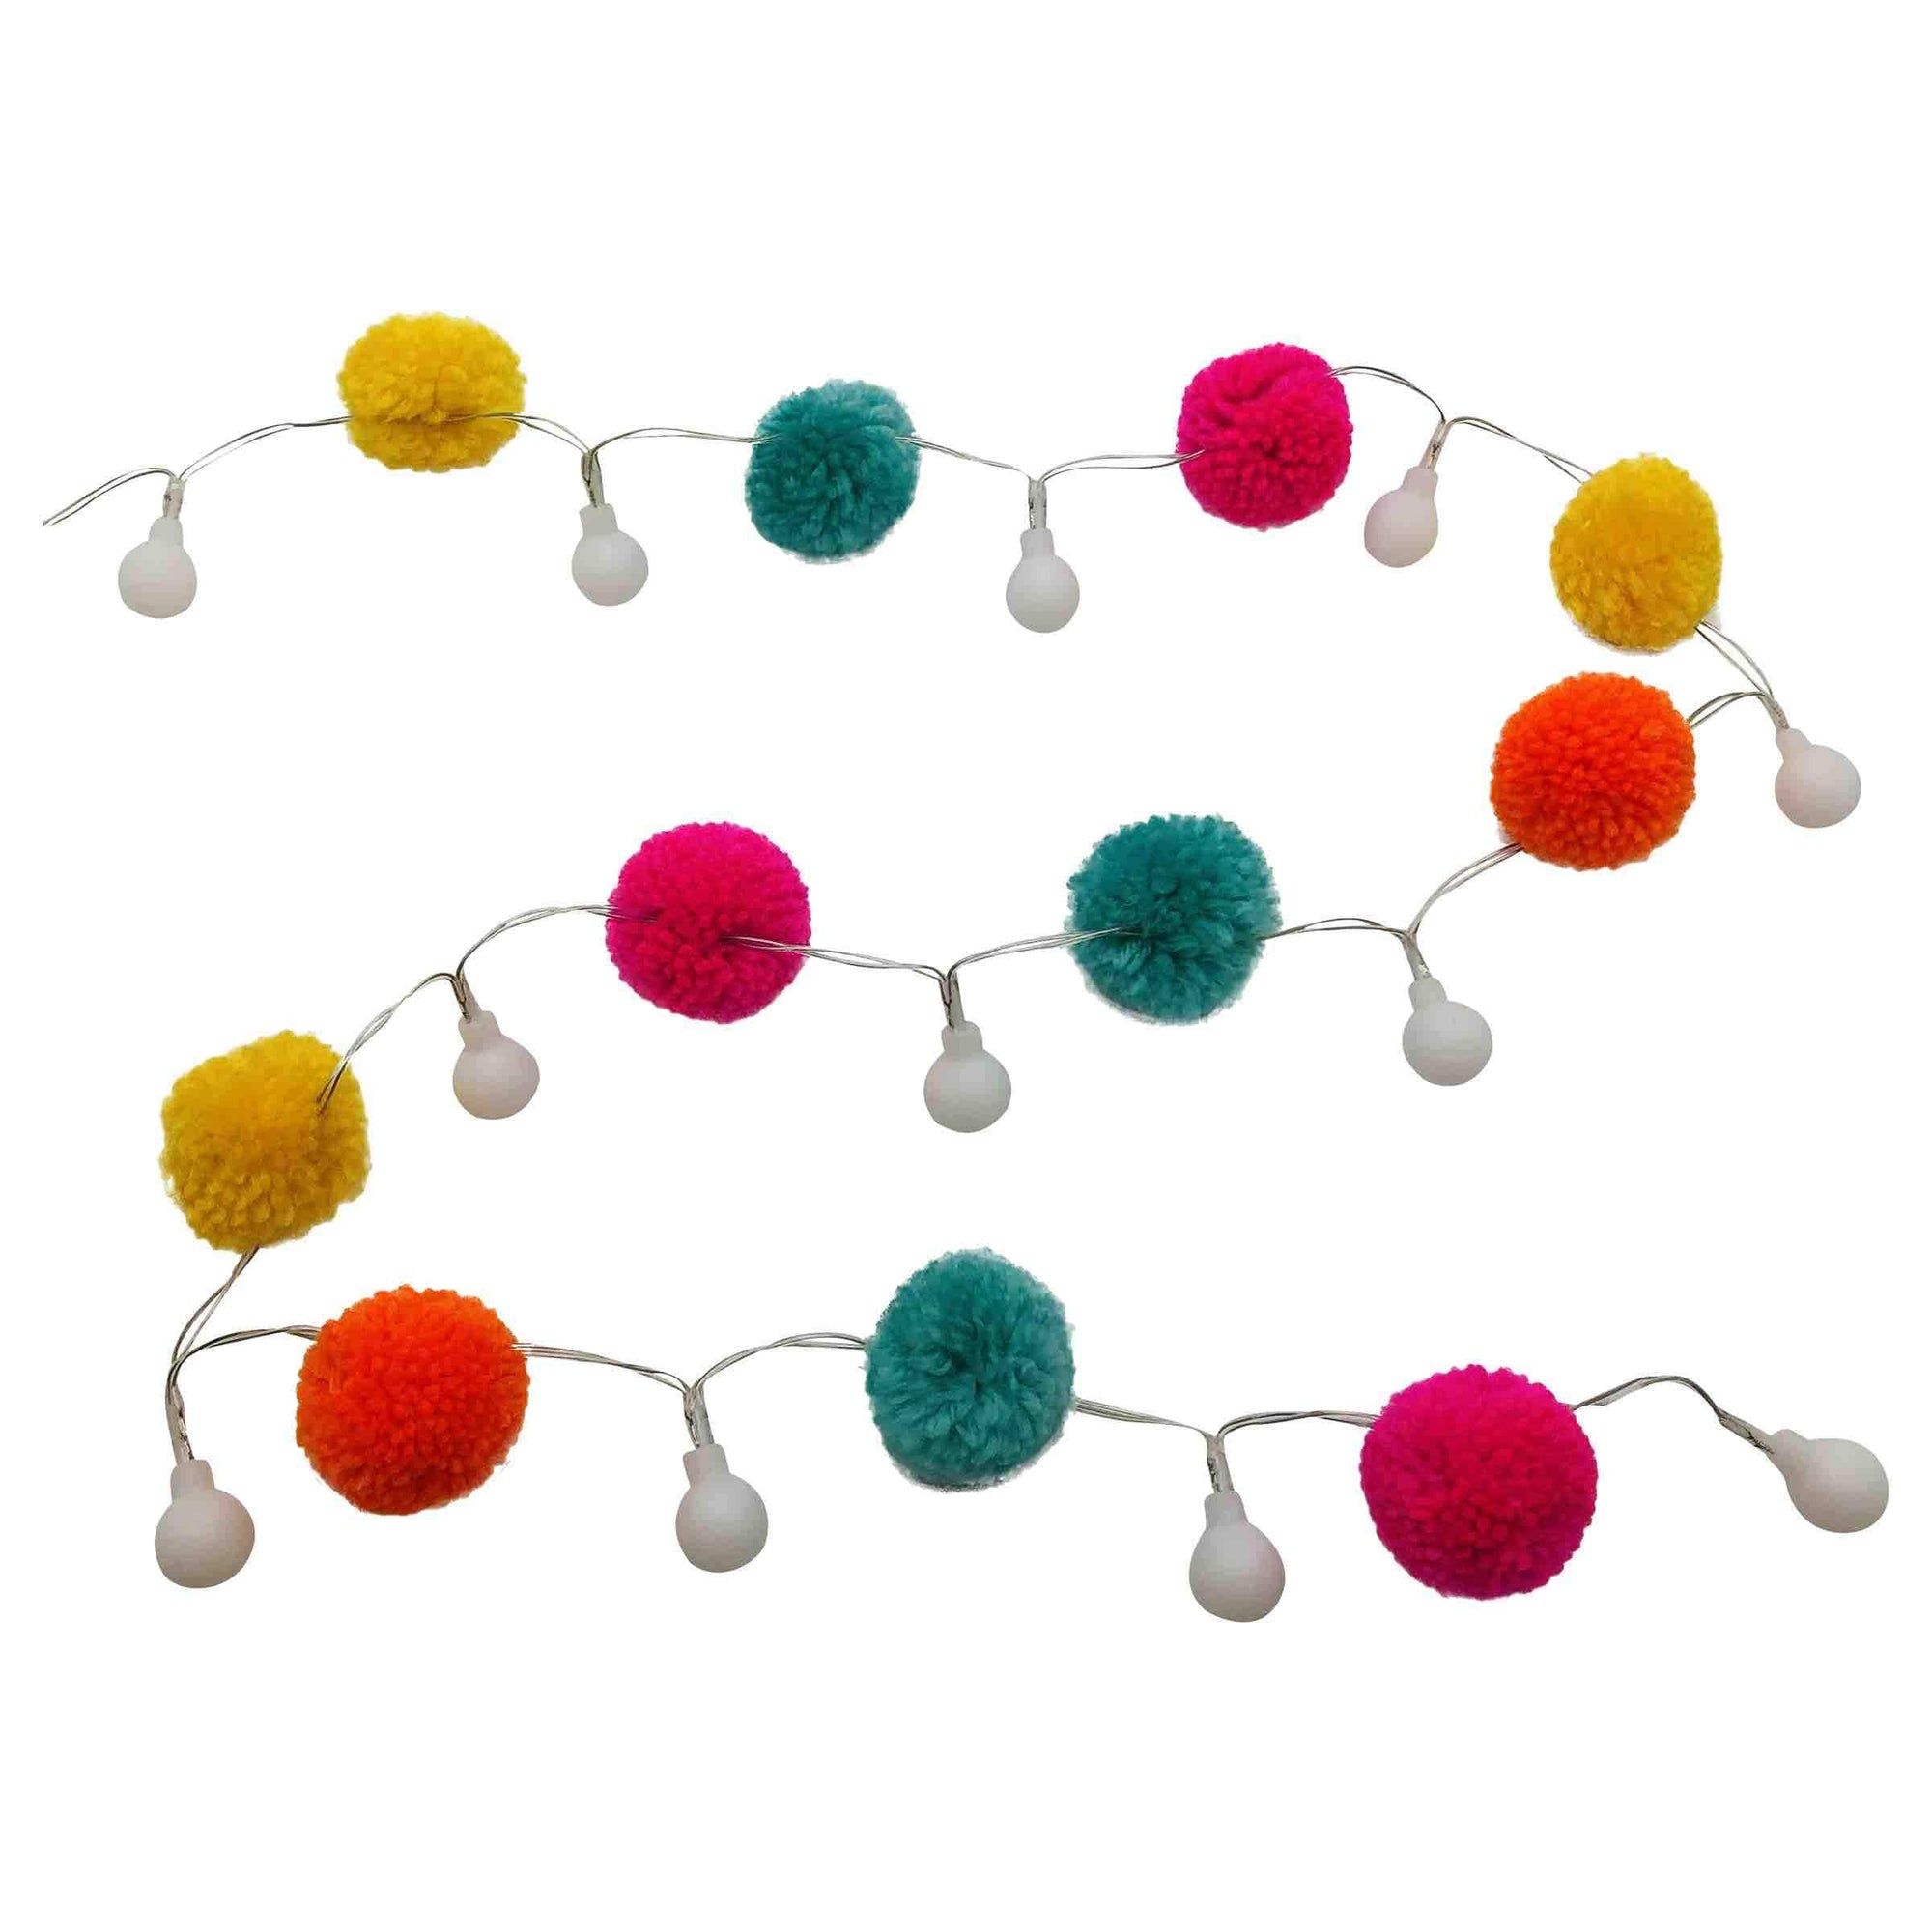 Streamline Lighting Pom Pom & LED String Light Garland